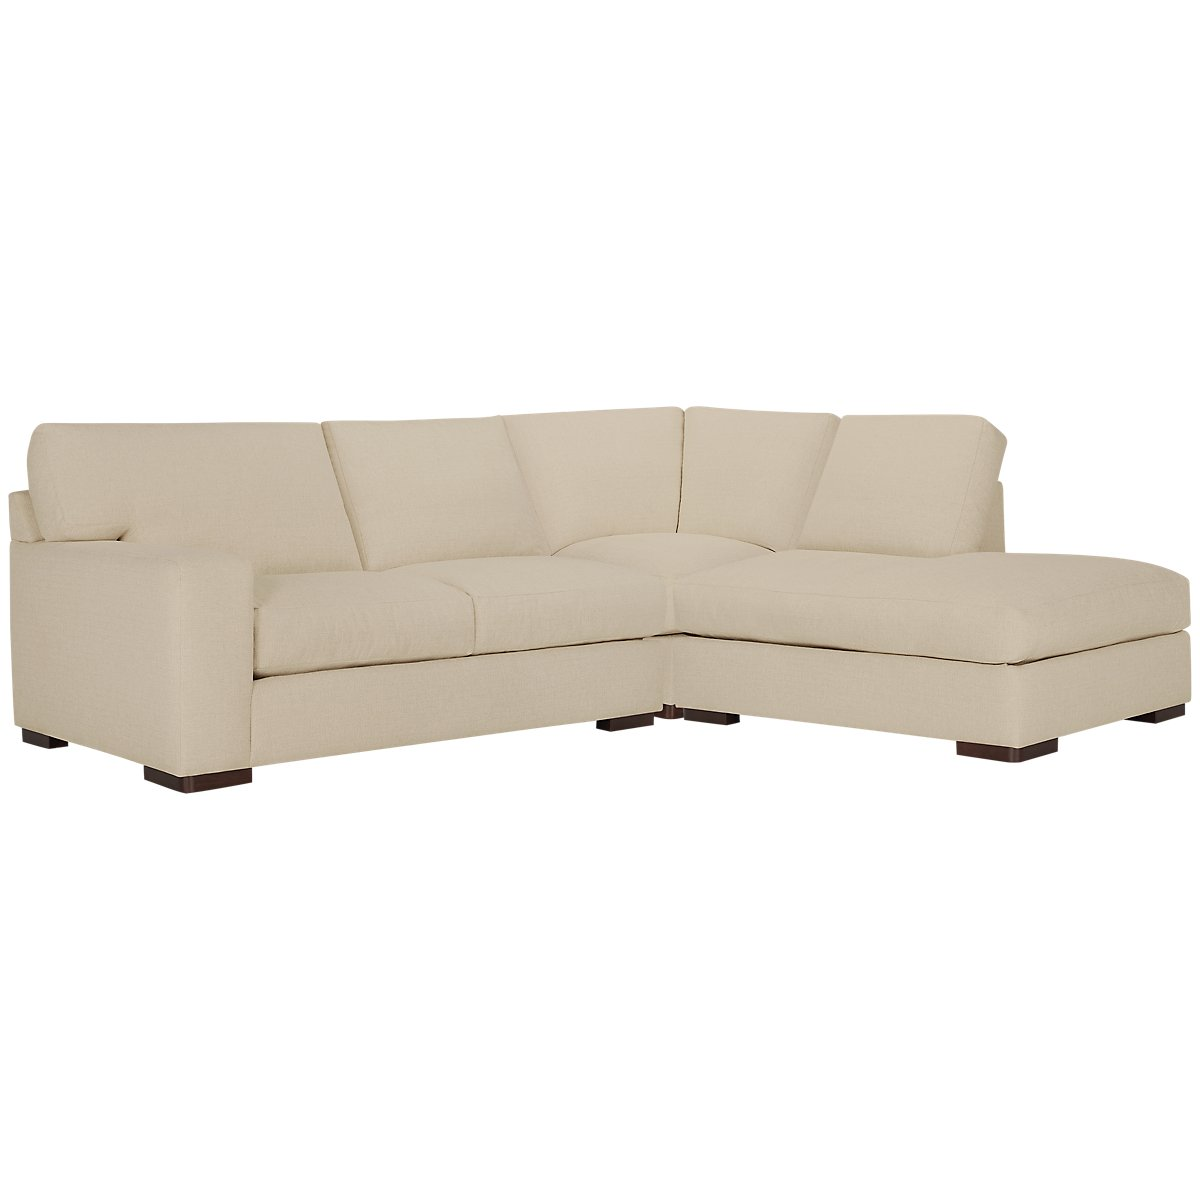 Veronica Khaki Fabric Right Bumper Sectional